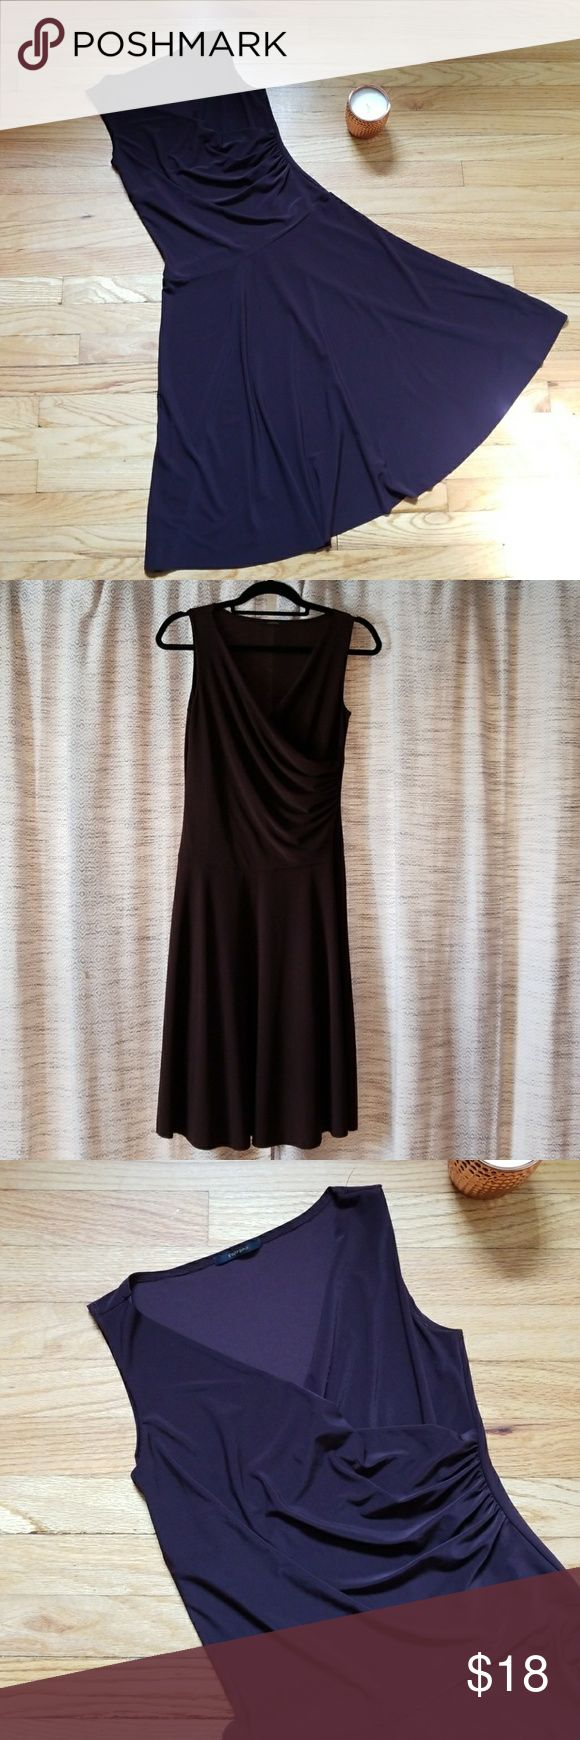 """Soprano Dress Soprano Dress   Sleeveless dress with side ruching and a-line skirt.  92% Polyester  8% Spandex   Measurements  Shoulder to Hem: 41"""" Bust: 17"""" Waist: 14""""  (Measurements are taken with garment laying flat )  Chocolate Brown   Size: Medium Soprano Dresses Midi"""